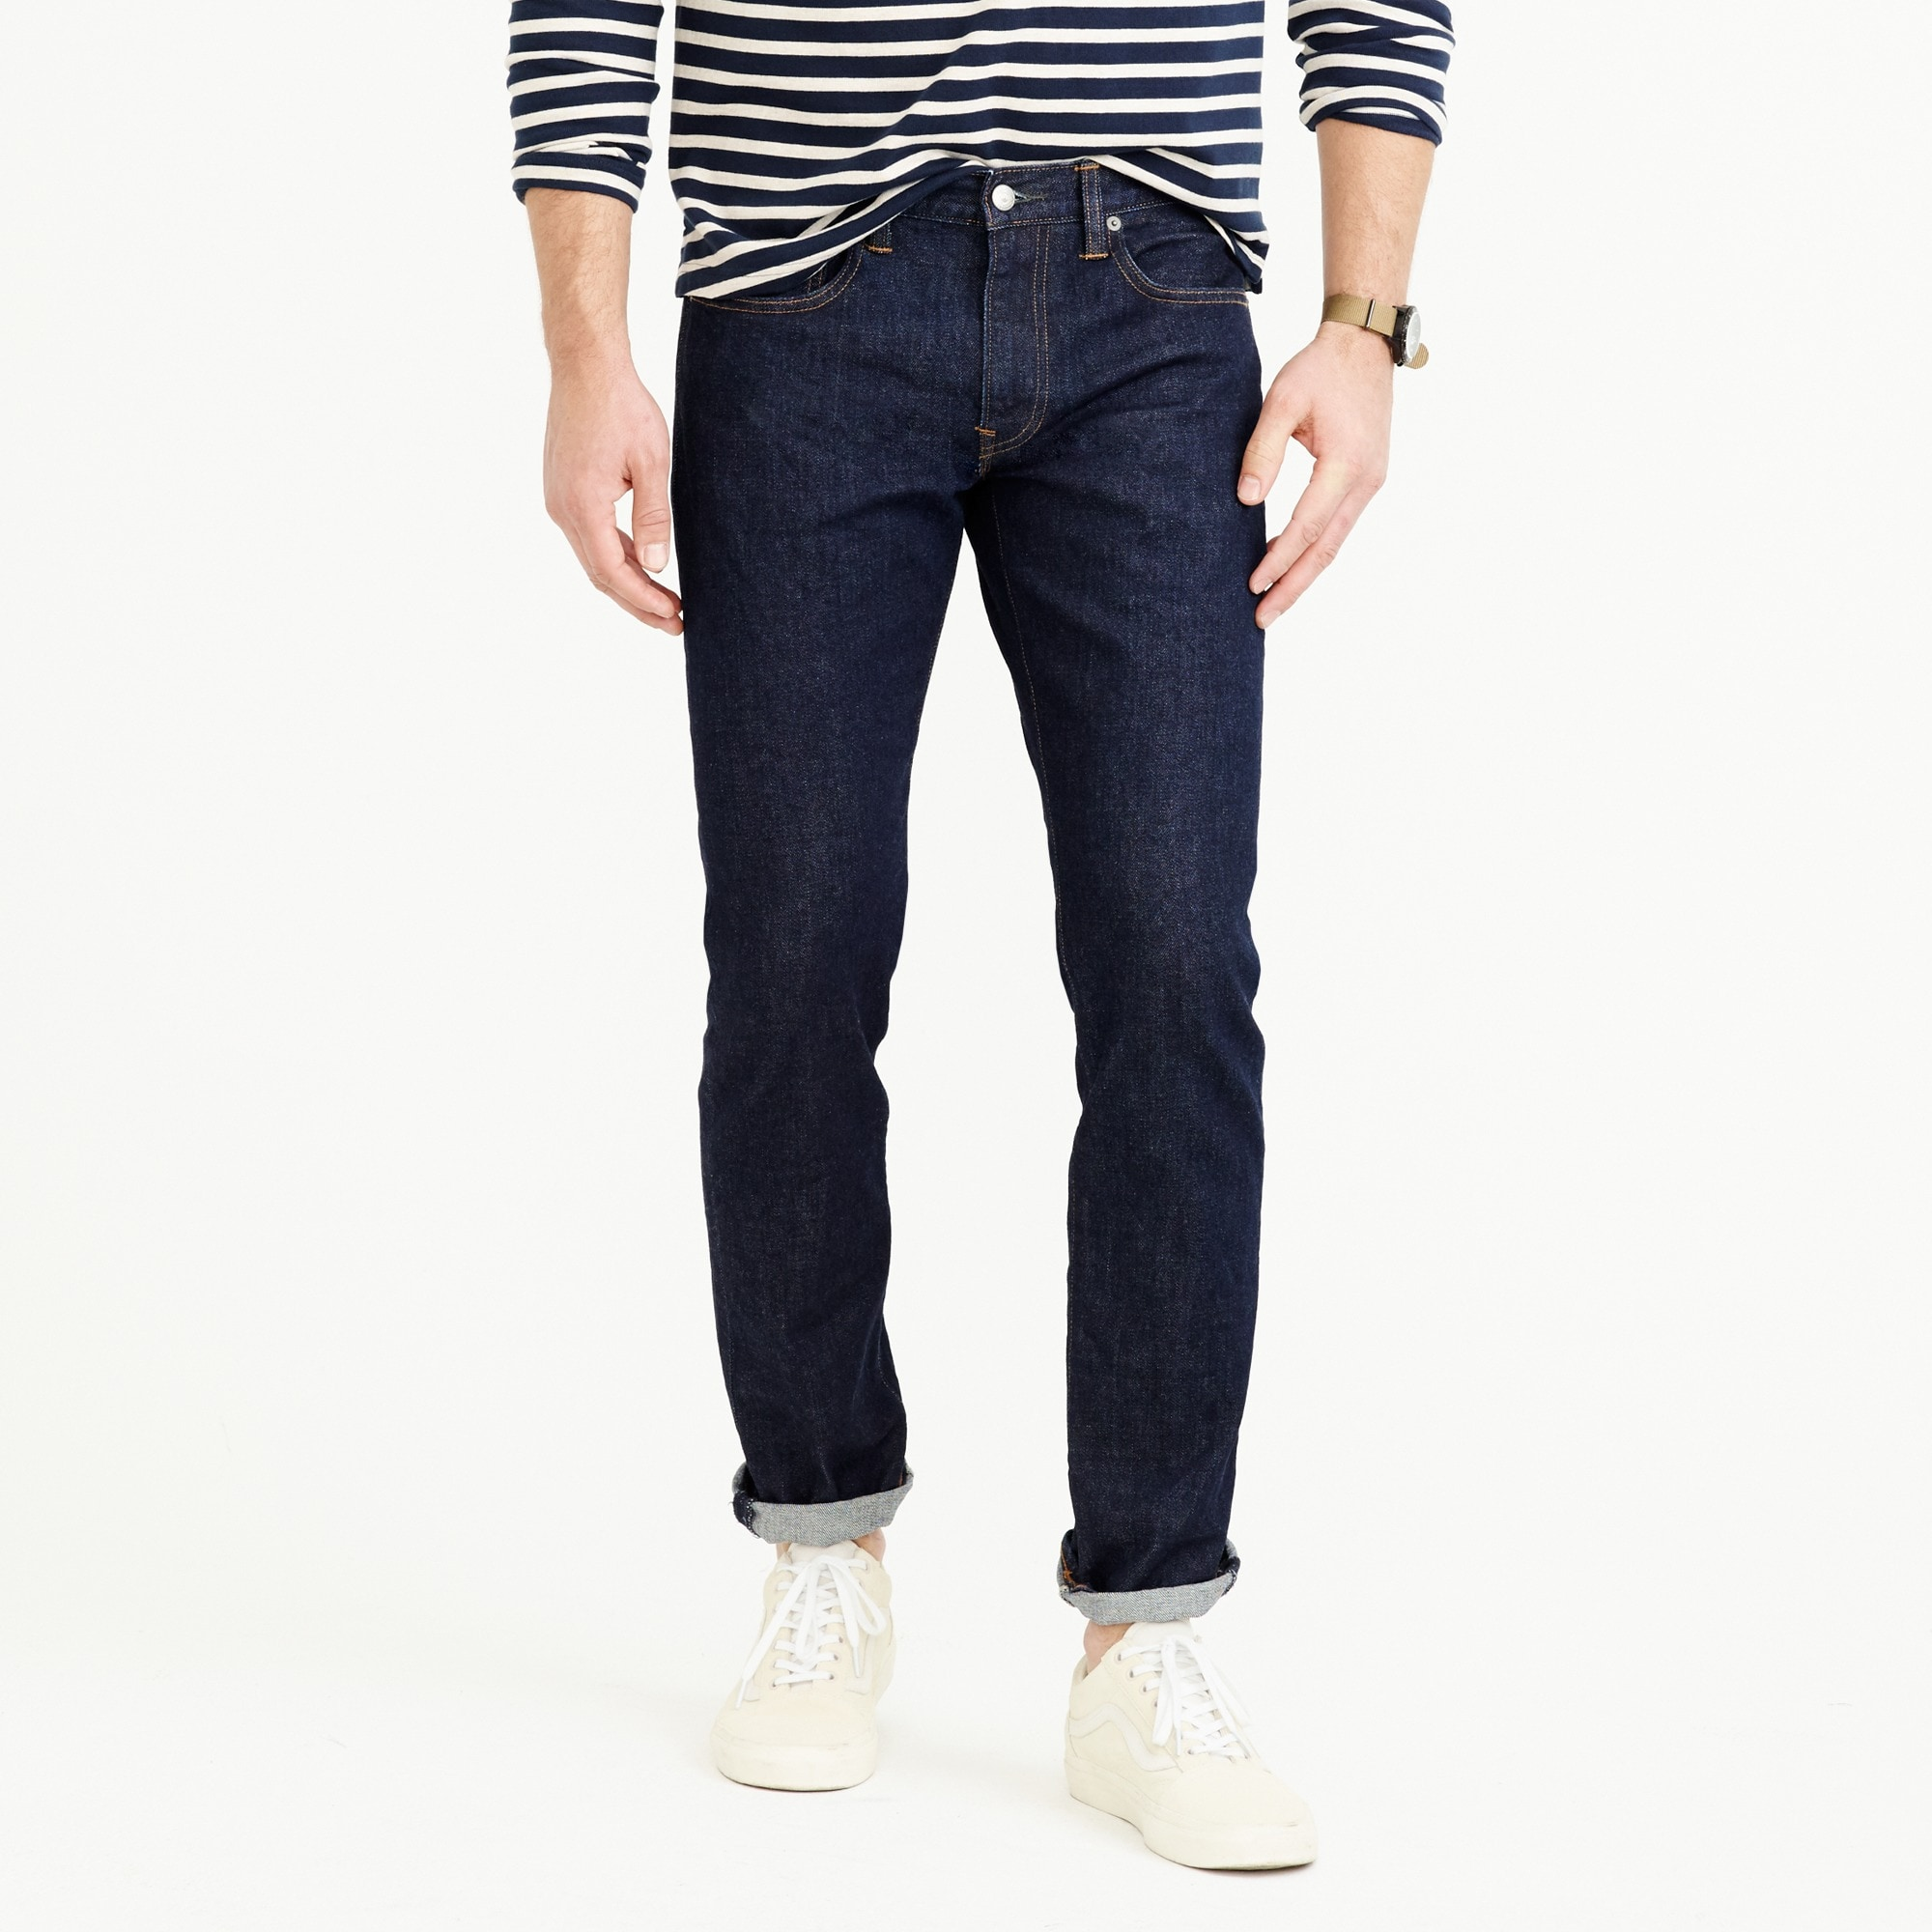 484 Slim-fit stretch jean in indigo men denim c